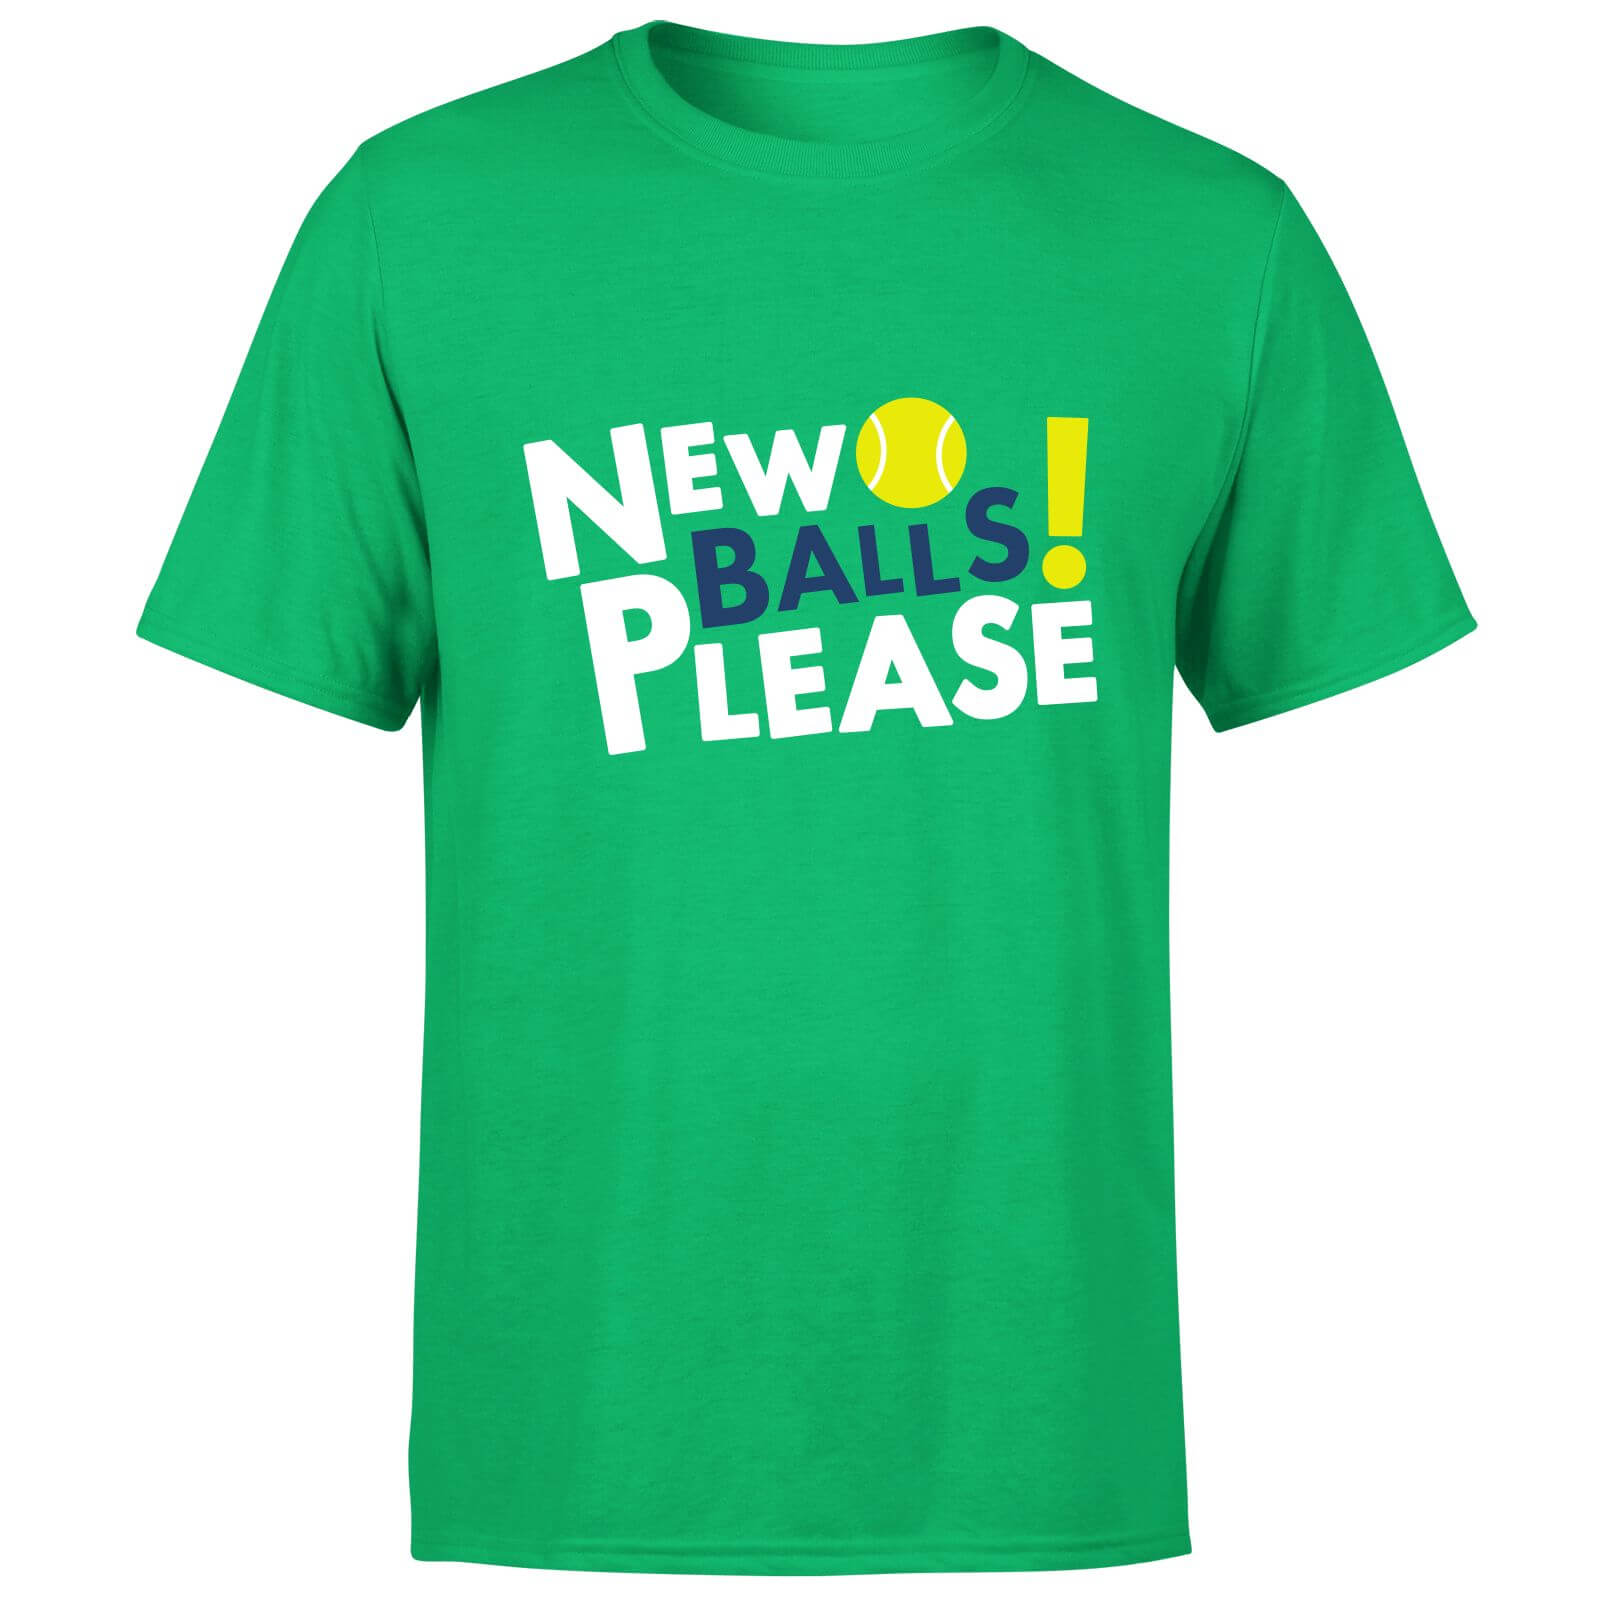 New Balls Please T-Shirt - Kelly Green